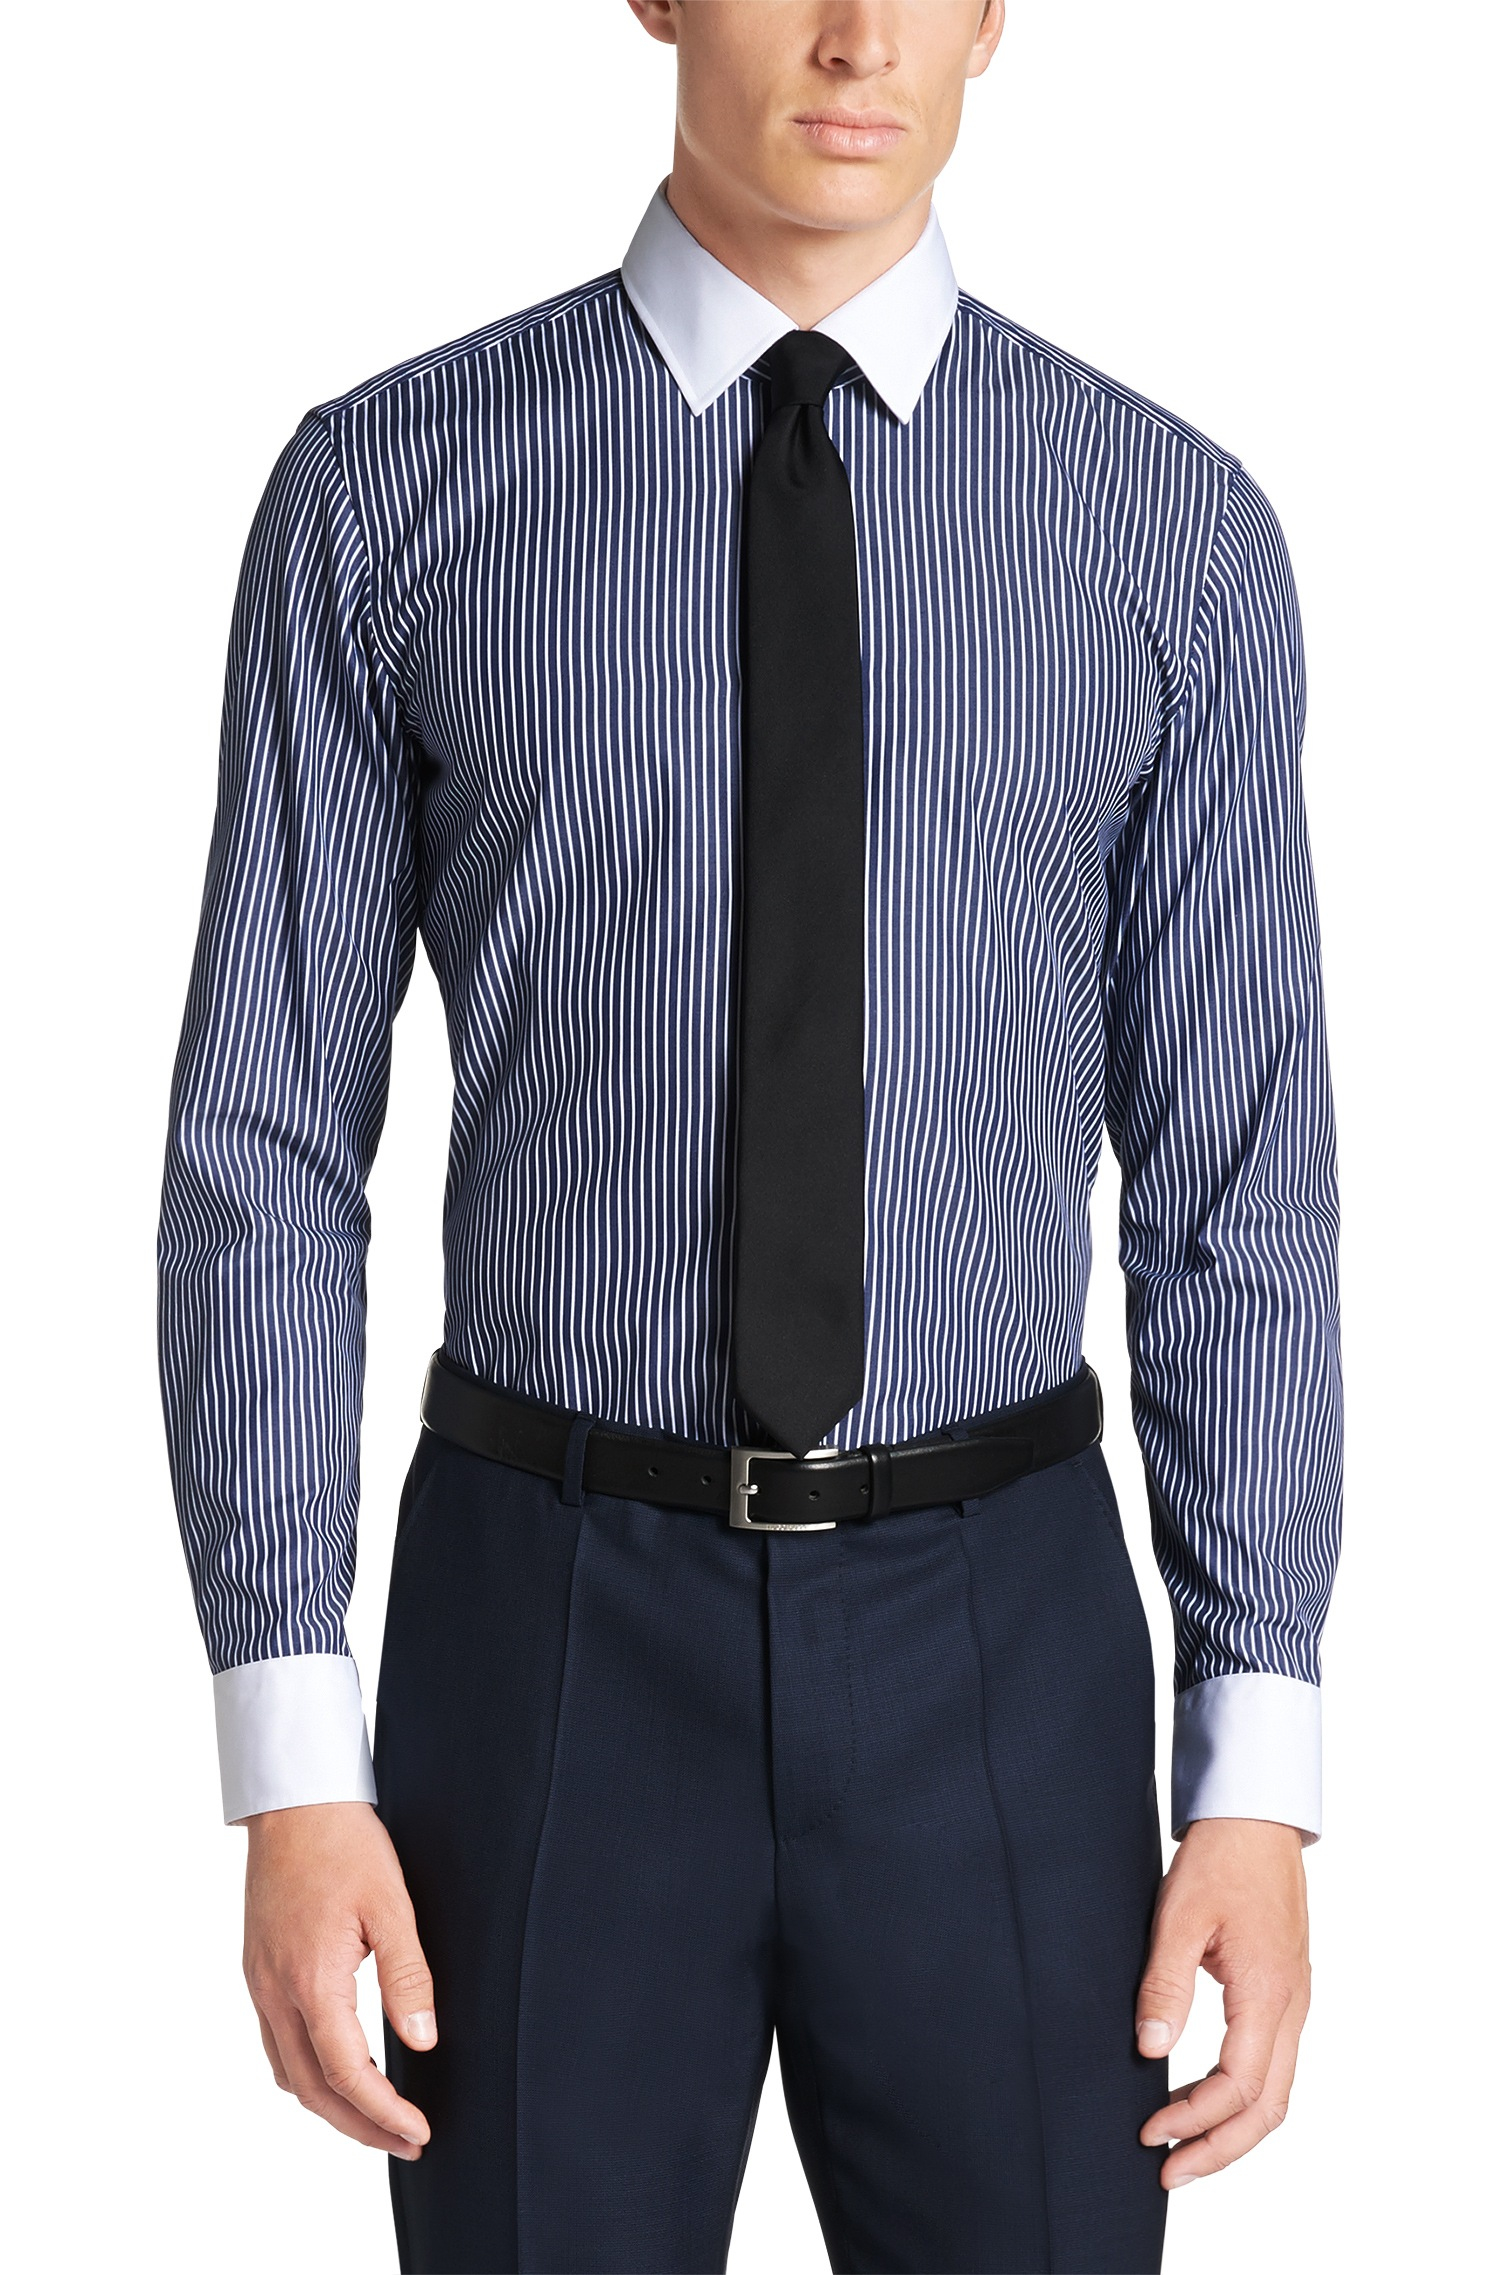 Easy Iron 25 Mg: Slim Fit, Easy Iron Cotton Striped